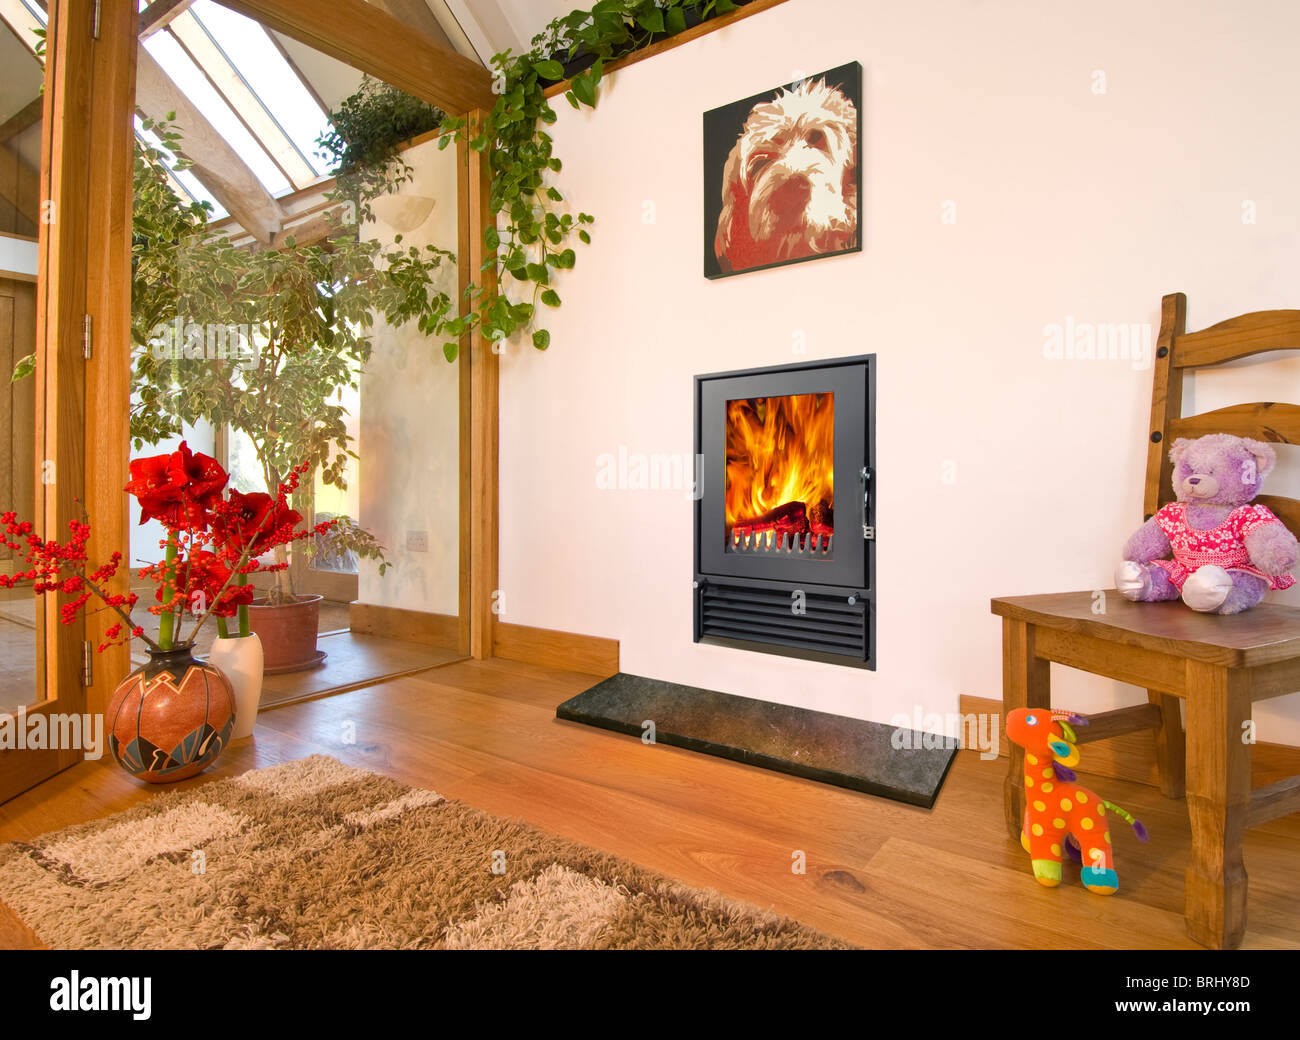 A Woodfire 12i Insert Wood Burning Stove In Tasteful Modern